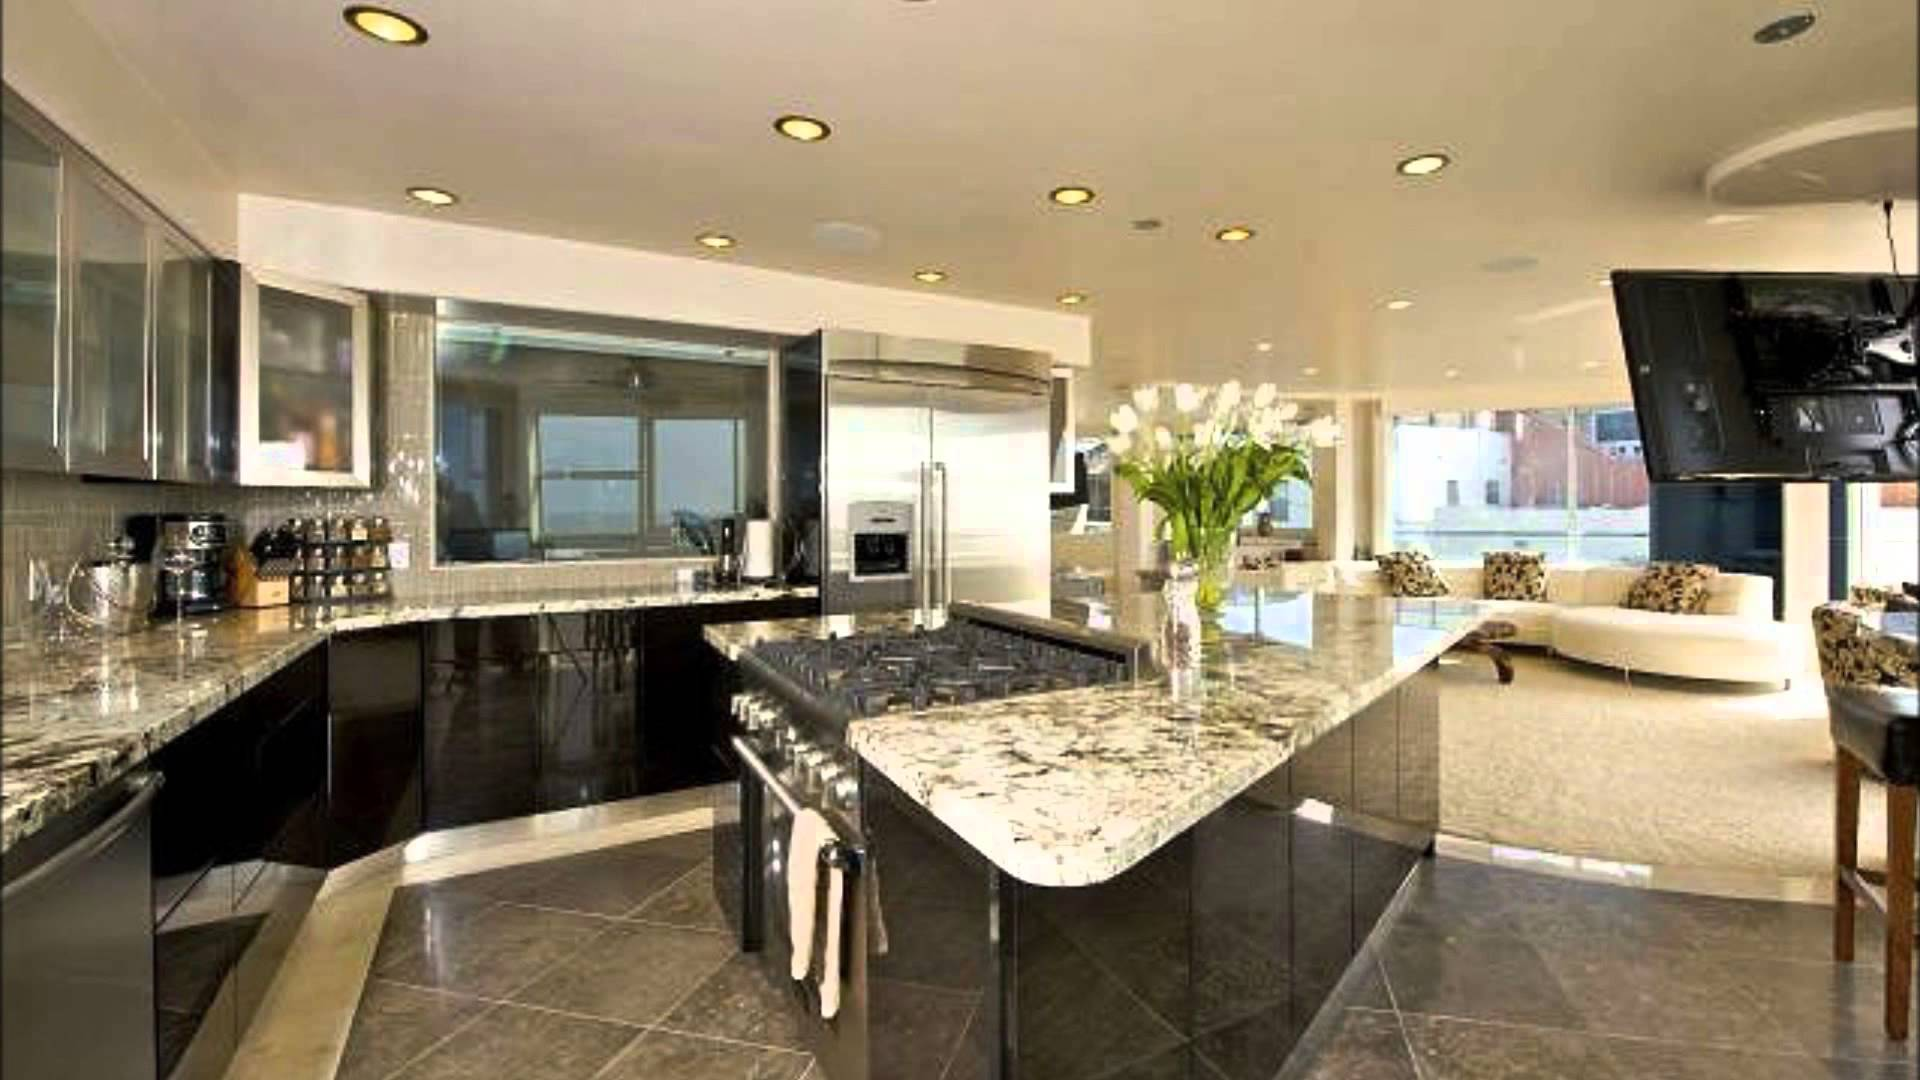 Design your own kitchen ideas with images for Kitchen designs pics